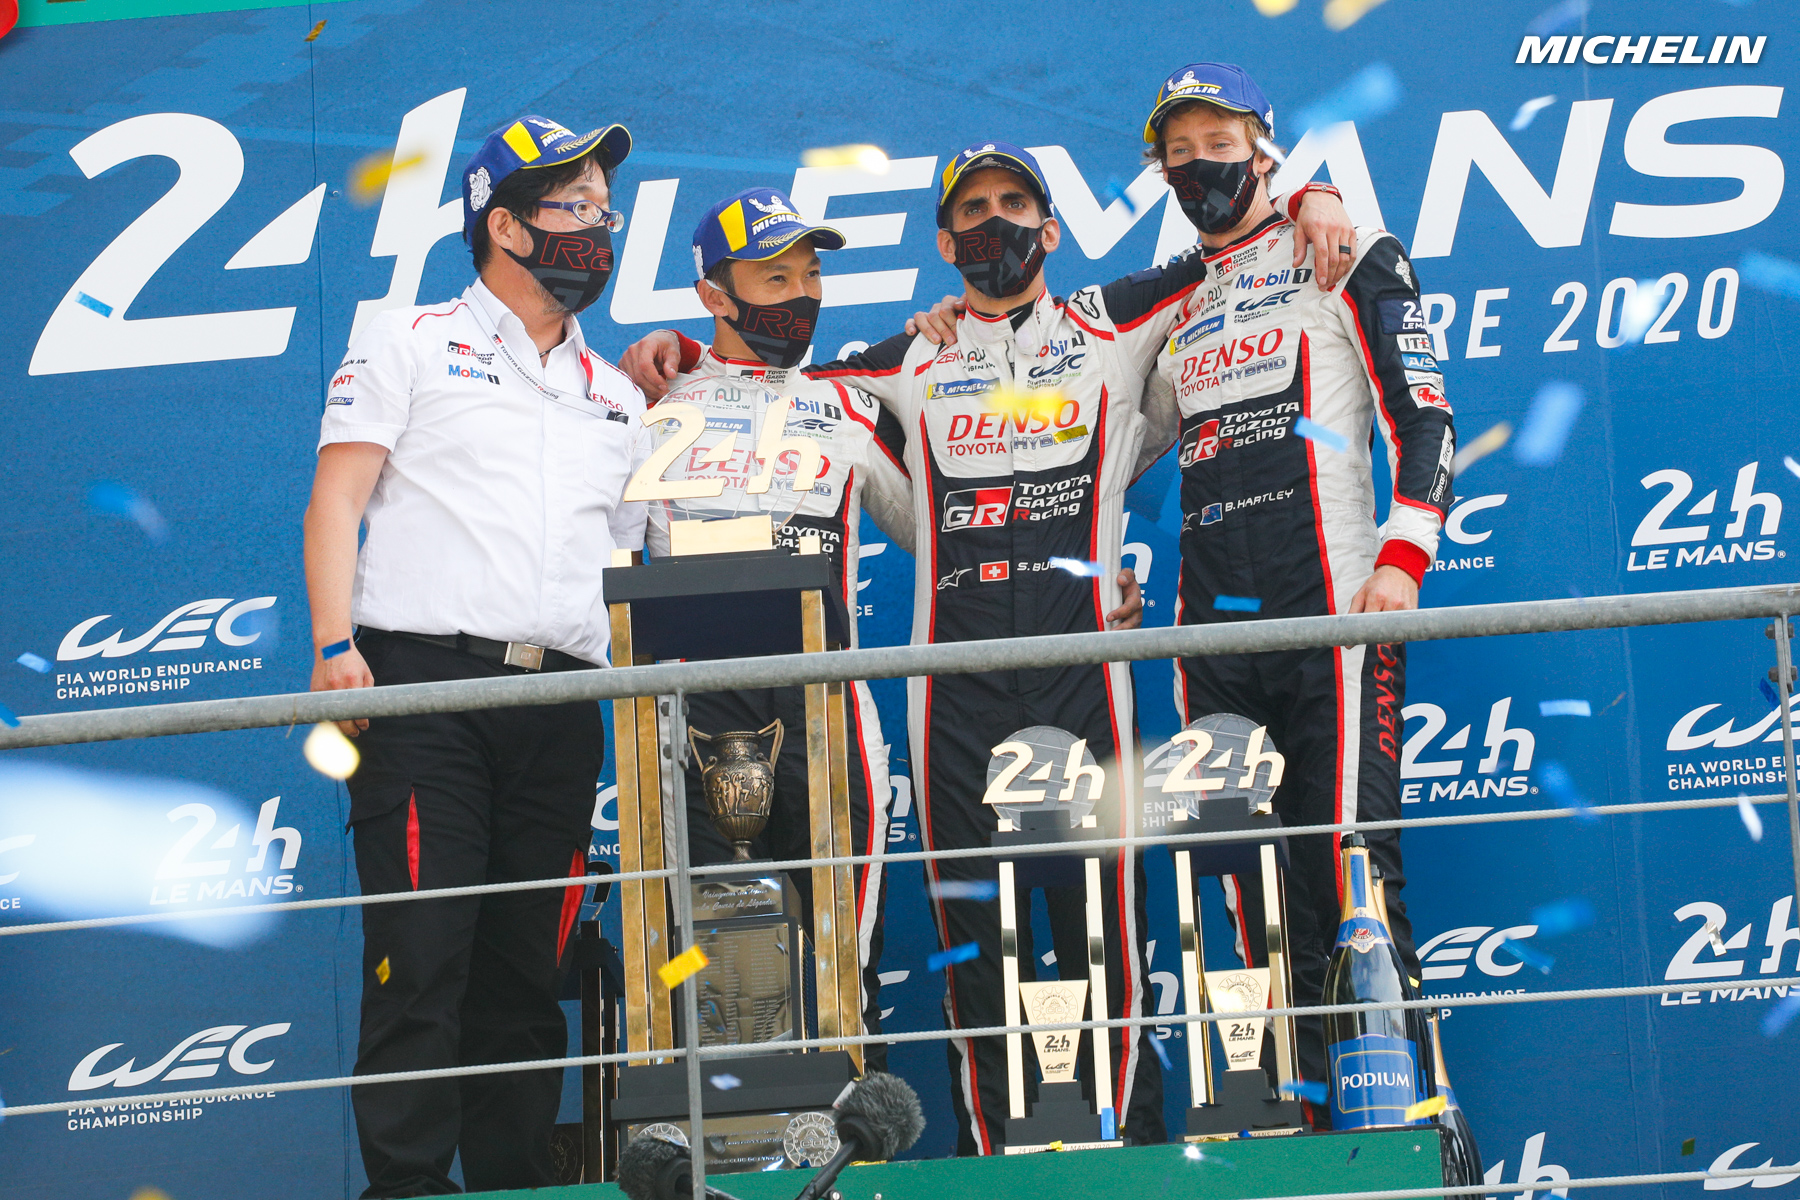 A shower of records for Michelin at Le Mans